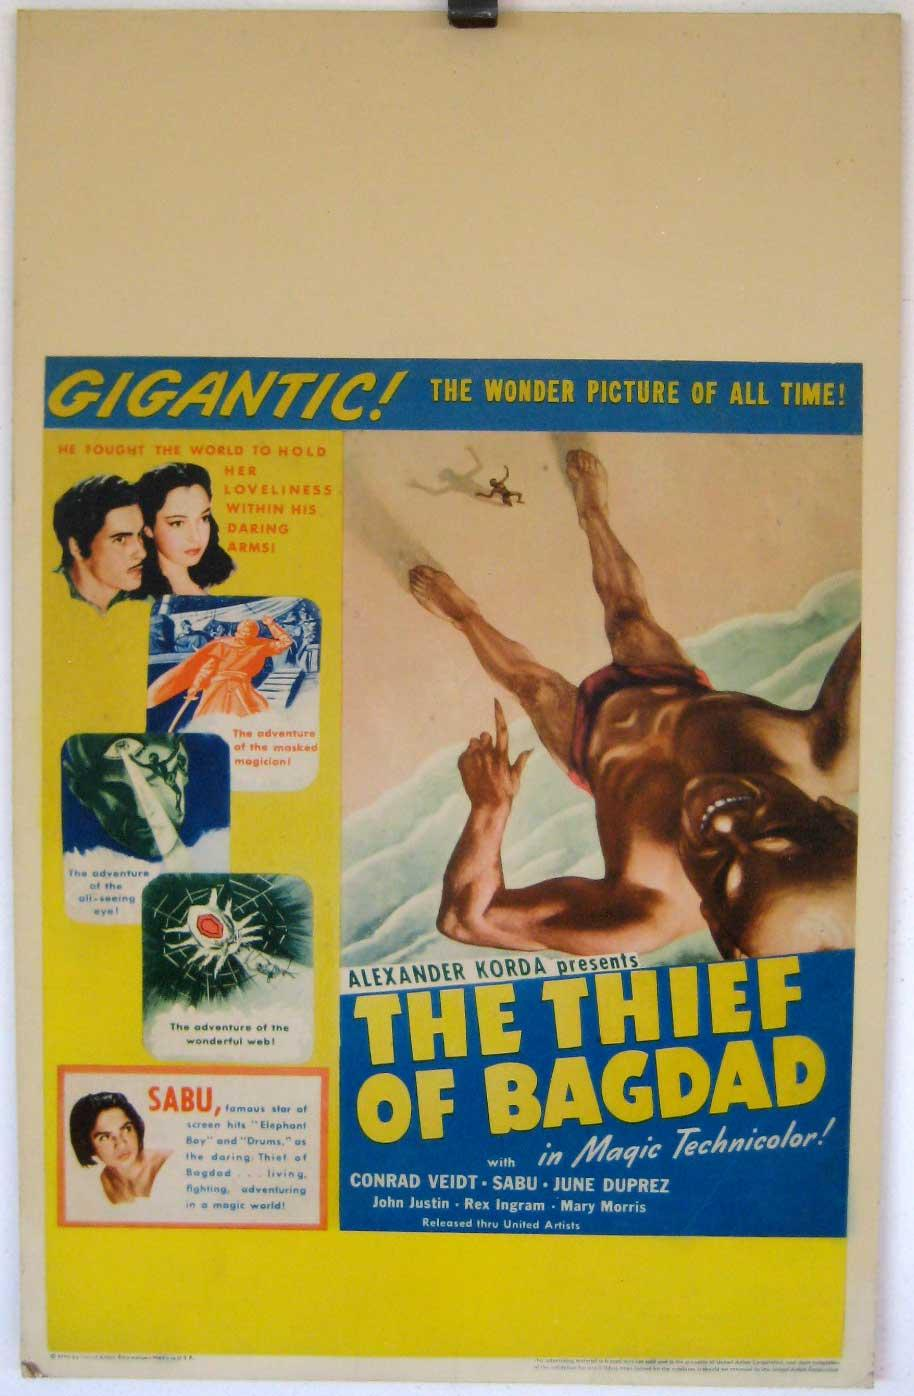 THE THIEF OF BAGDAD MOVIE POSTER/THIEF OF BAGDAD, THE/WINDOW CARD